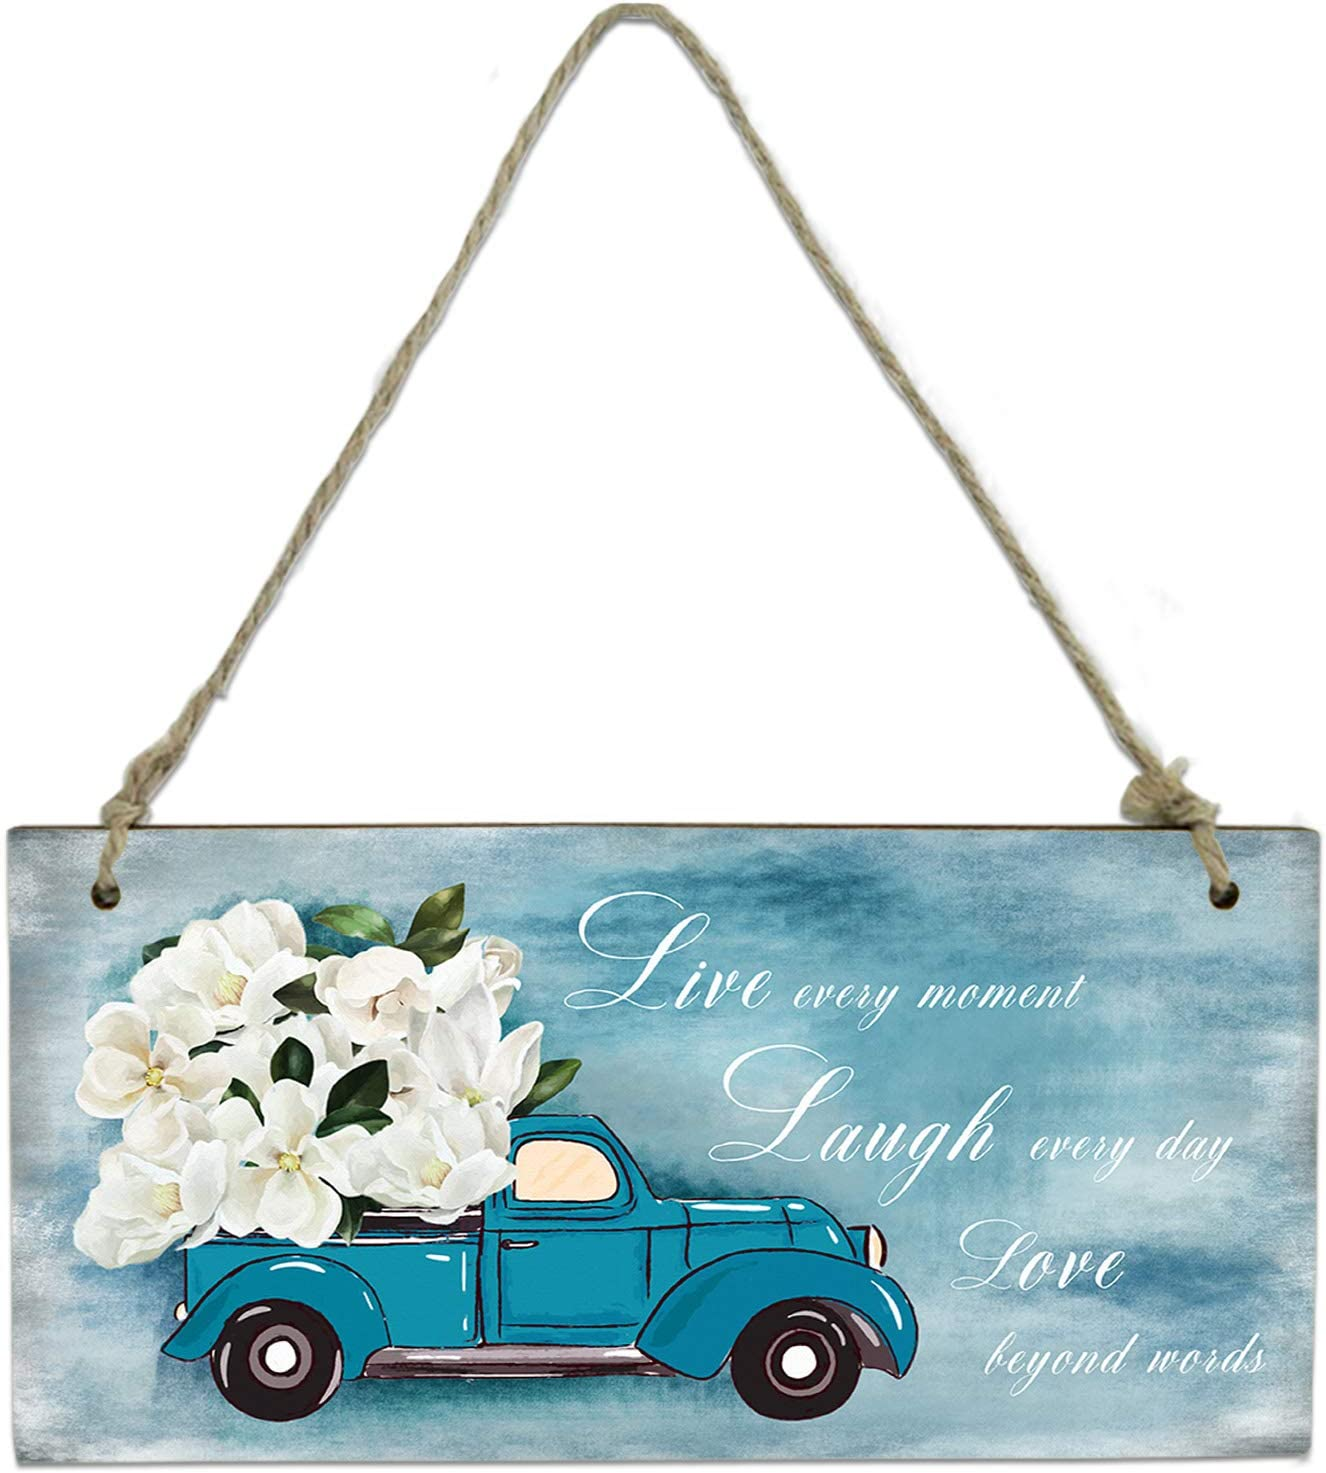 EZON-CH Welcome Sign Wood Wall Hanging Plaque Sign Home Decoration Blue Truck Carrying Magnolia Flowers Quotes Live Laugh Love Printed Wall Pediments for Wall Decor 8